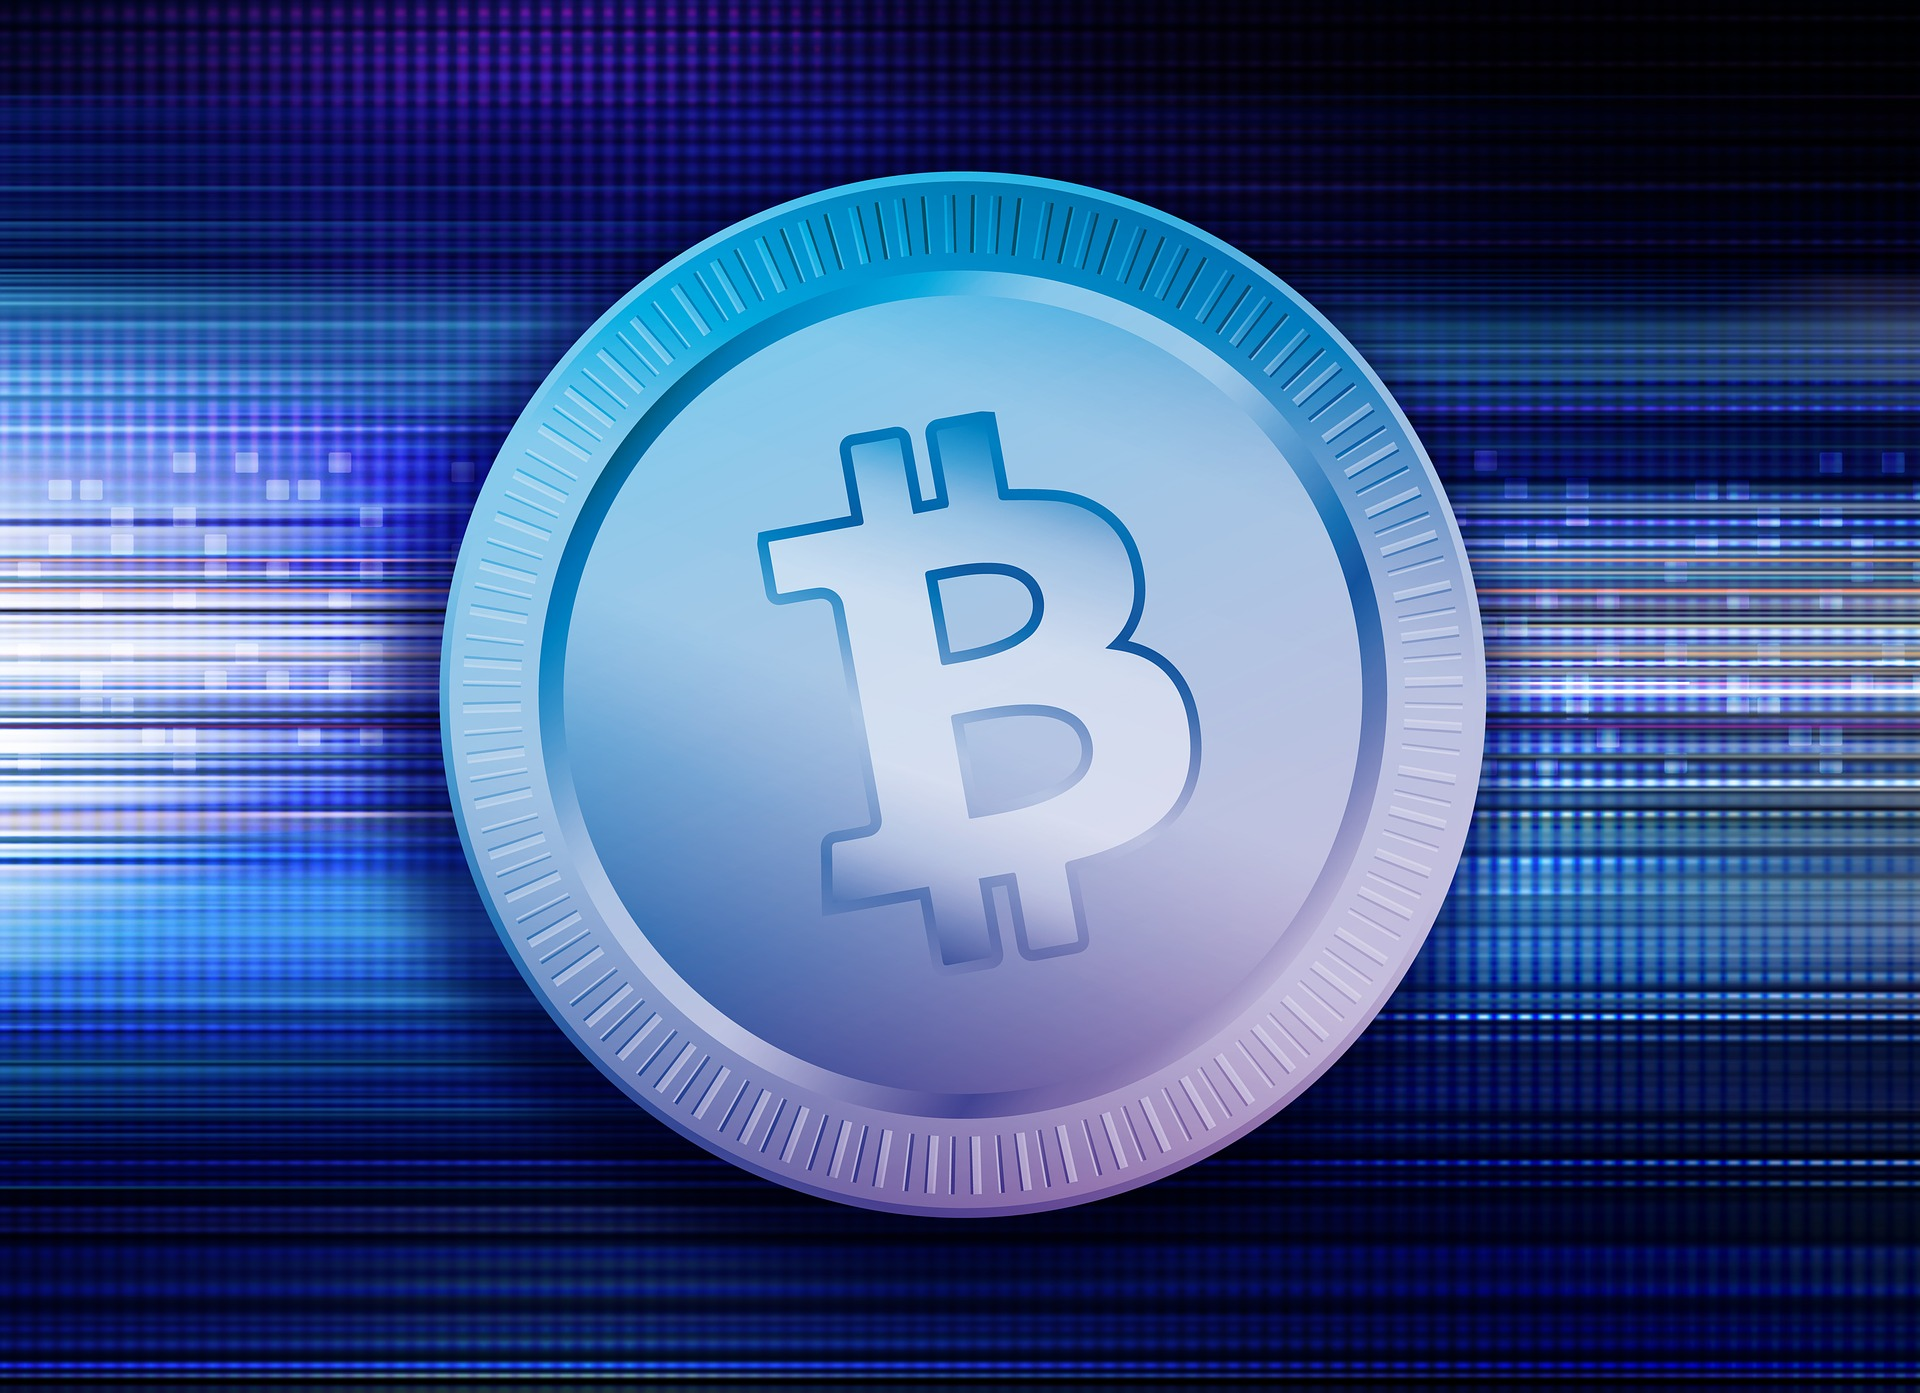 Bitcoin Cash (BCH/USD) reclaims $130 level after strong Tuesday finish